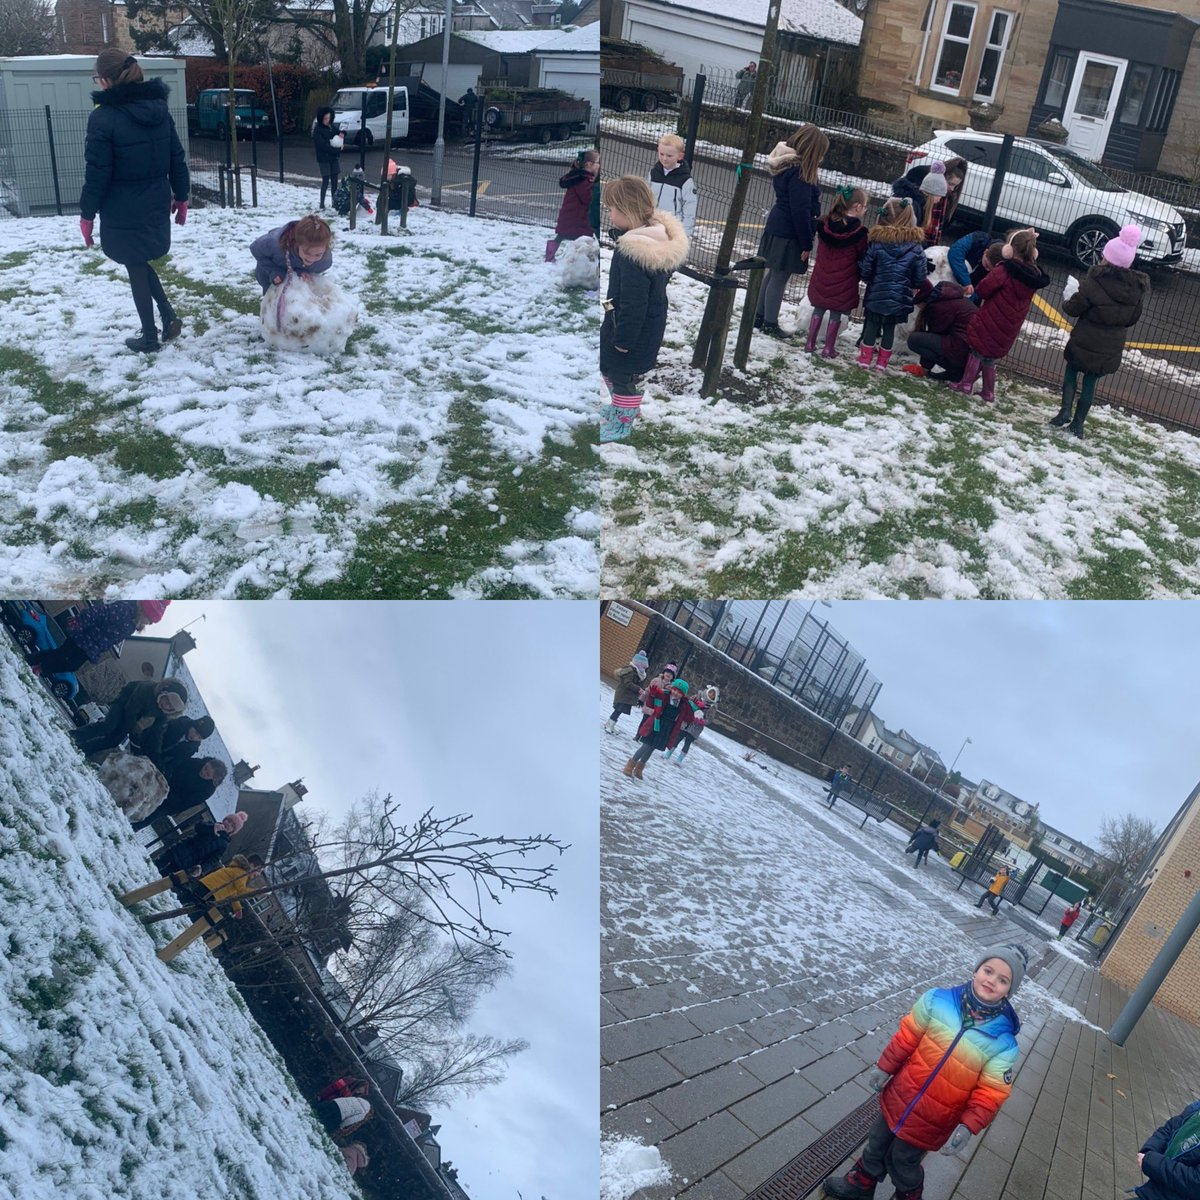 P1, P2 & P7 having some fun in the snow! #TeamKirkton #PlayingTogether #ExploringTogether pic.twitter.com/swT6e9ug10